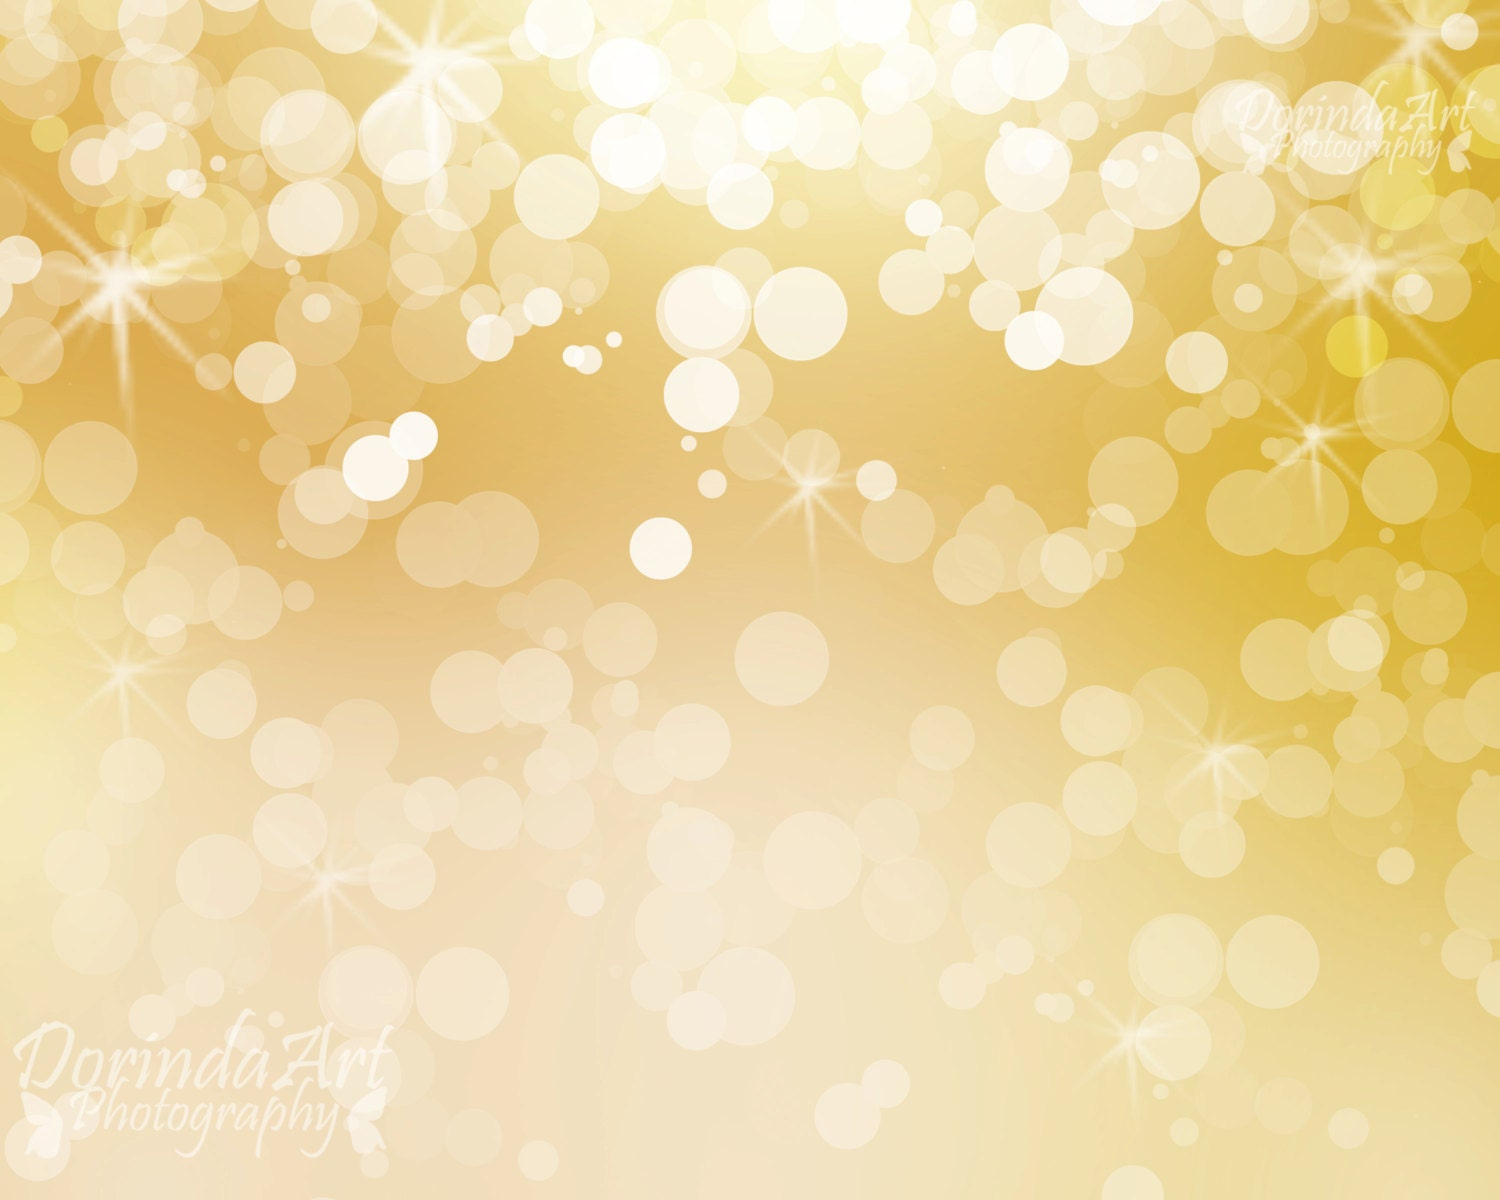 Gold Christmas overlays Christmas background Bokeh overlay Bokeh background print Digital Photo overlay background Sparkling Light overlay - DorindaArt